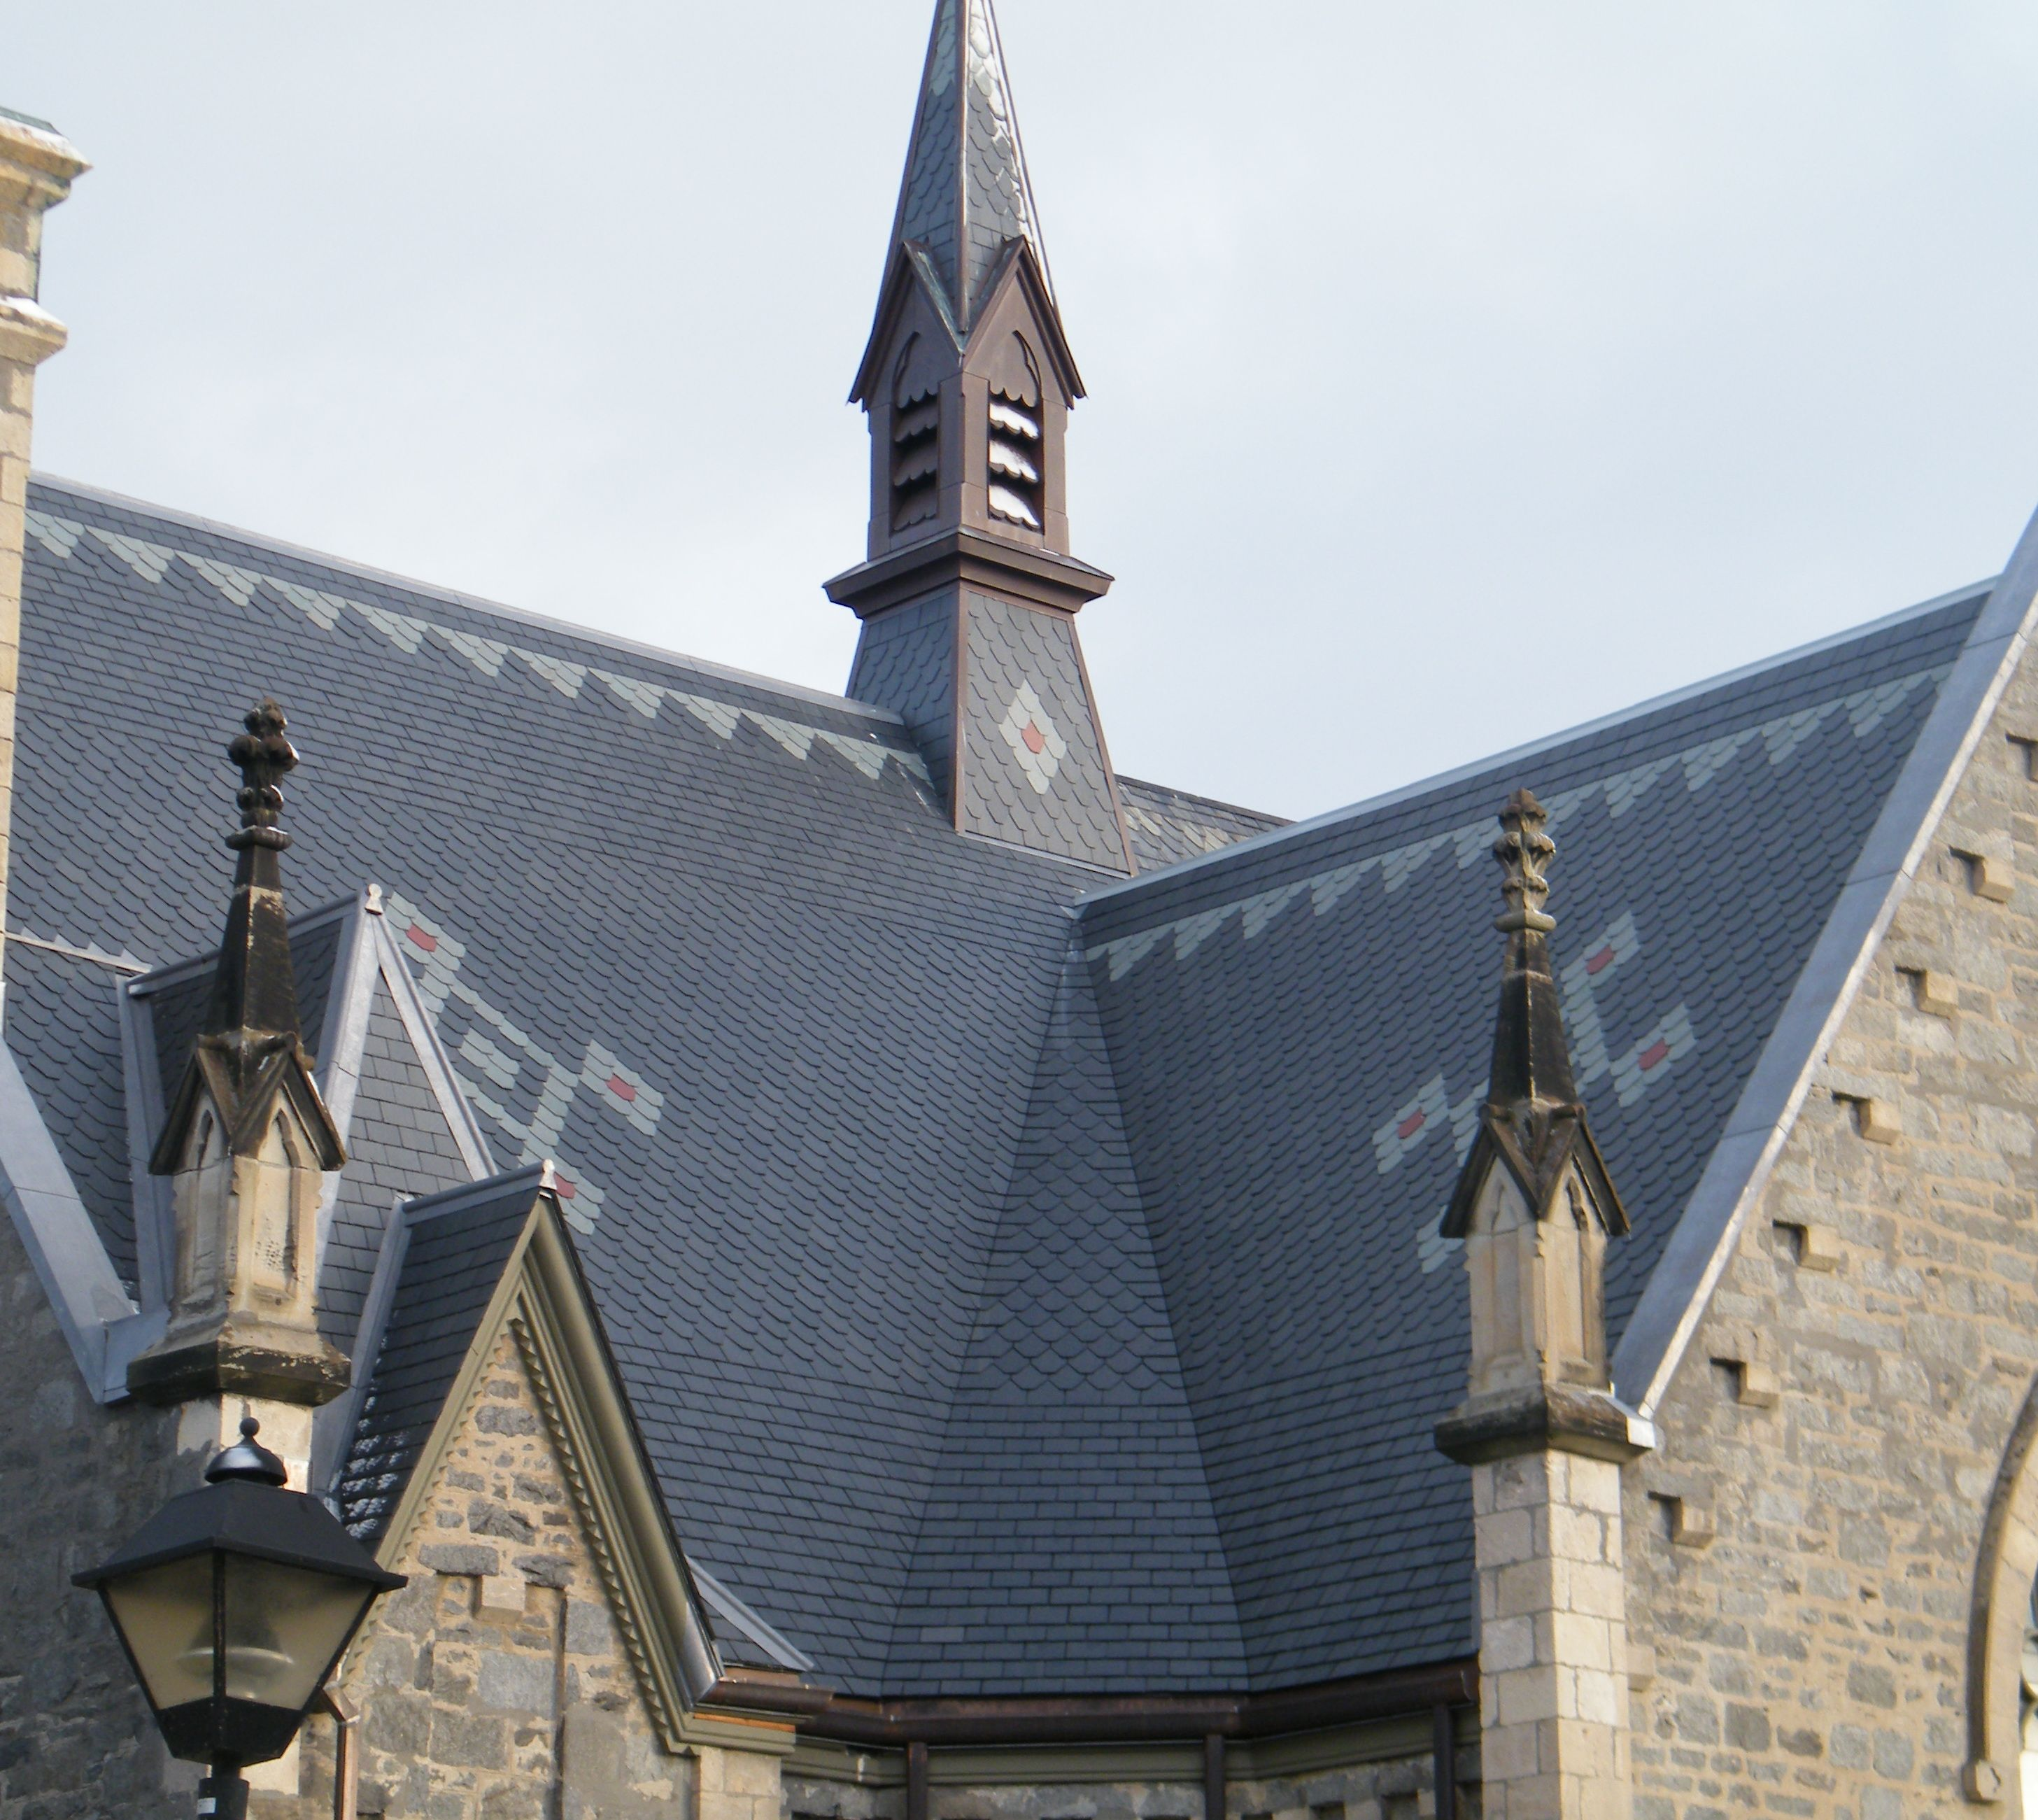 Patterned Slate Roof On Church Slate Roof Roof Cost Roof Plan